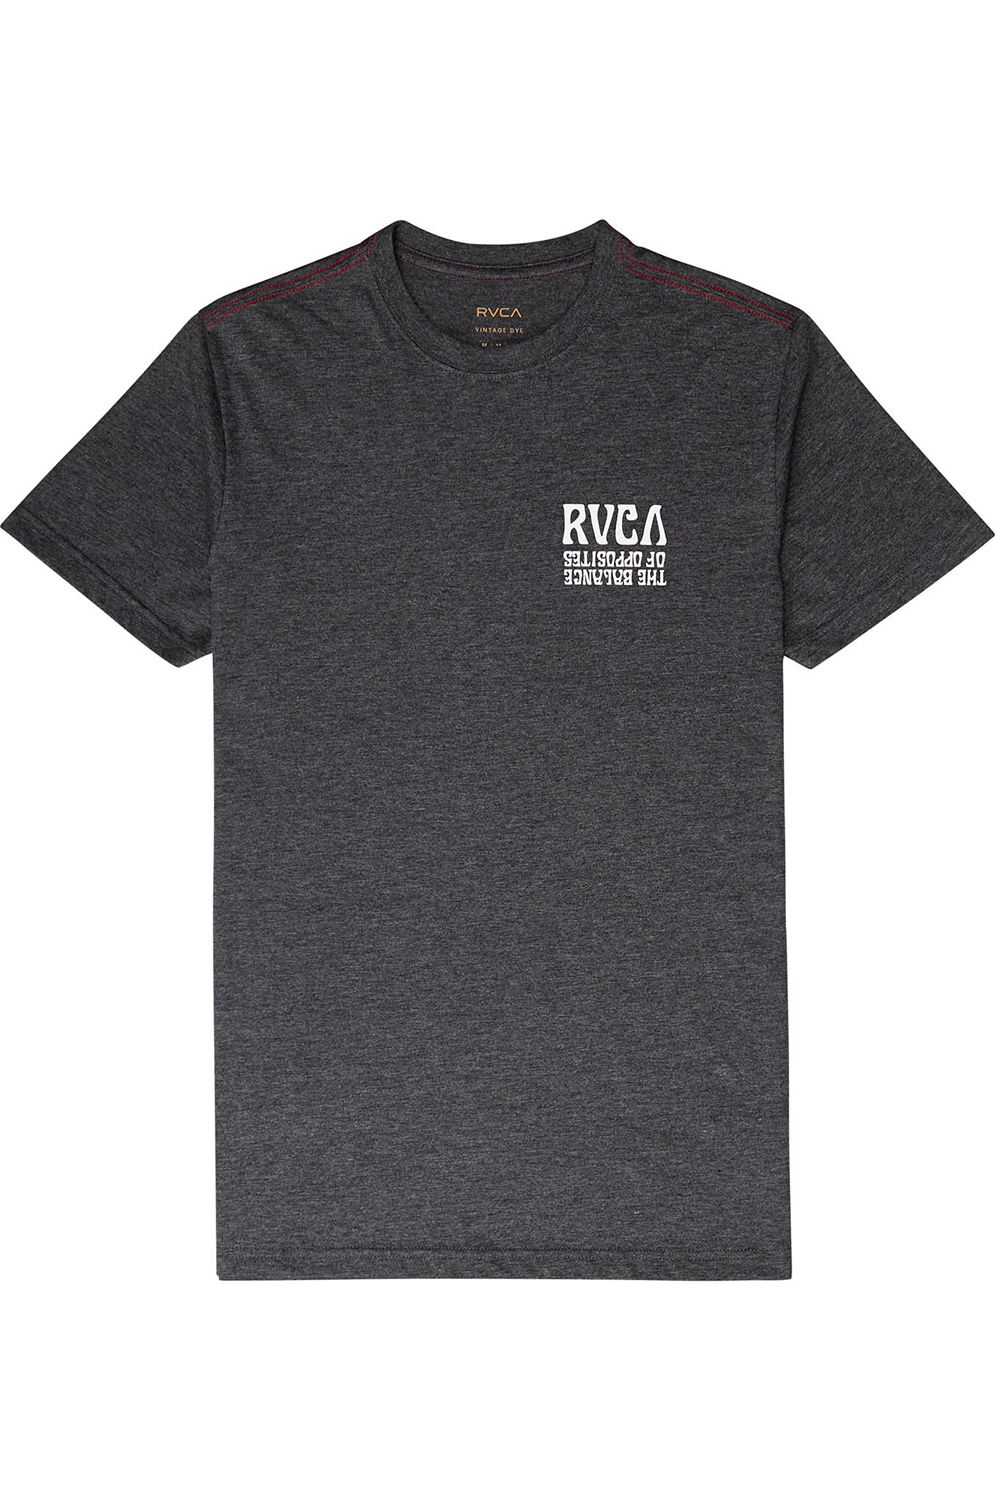 T-Shirt RVCA DAYBREAK Charcoal